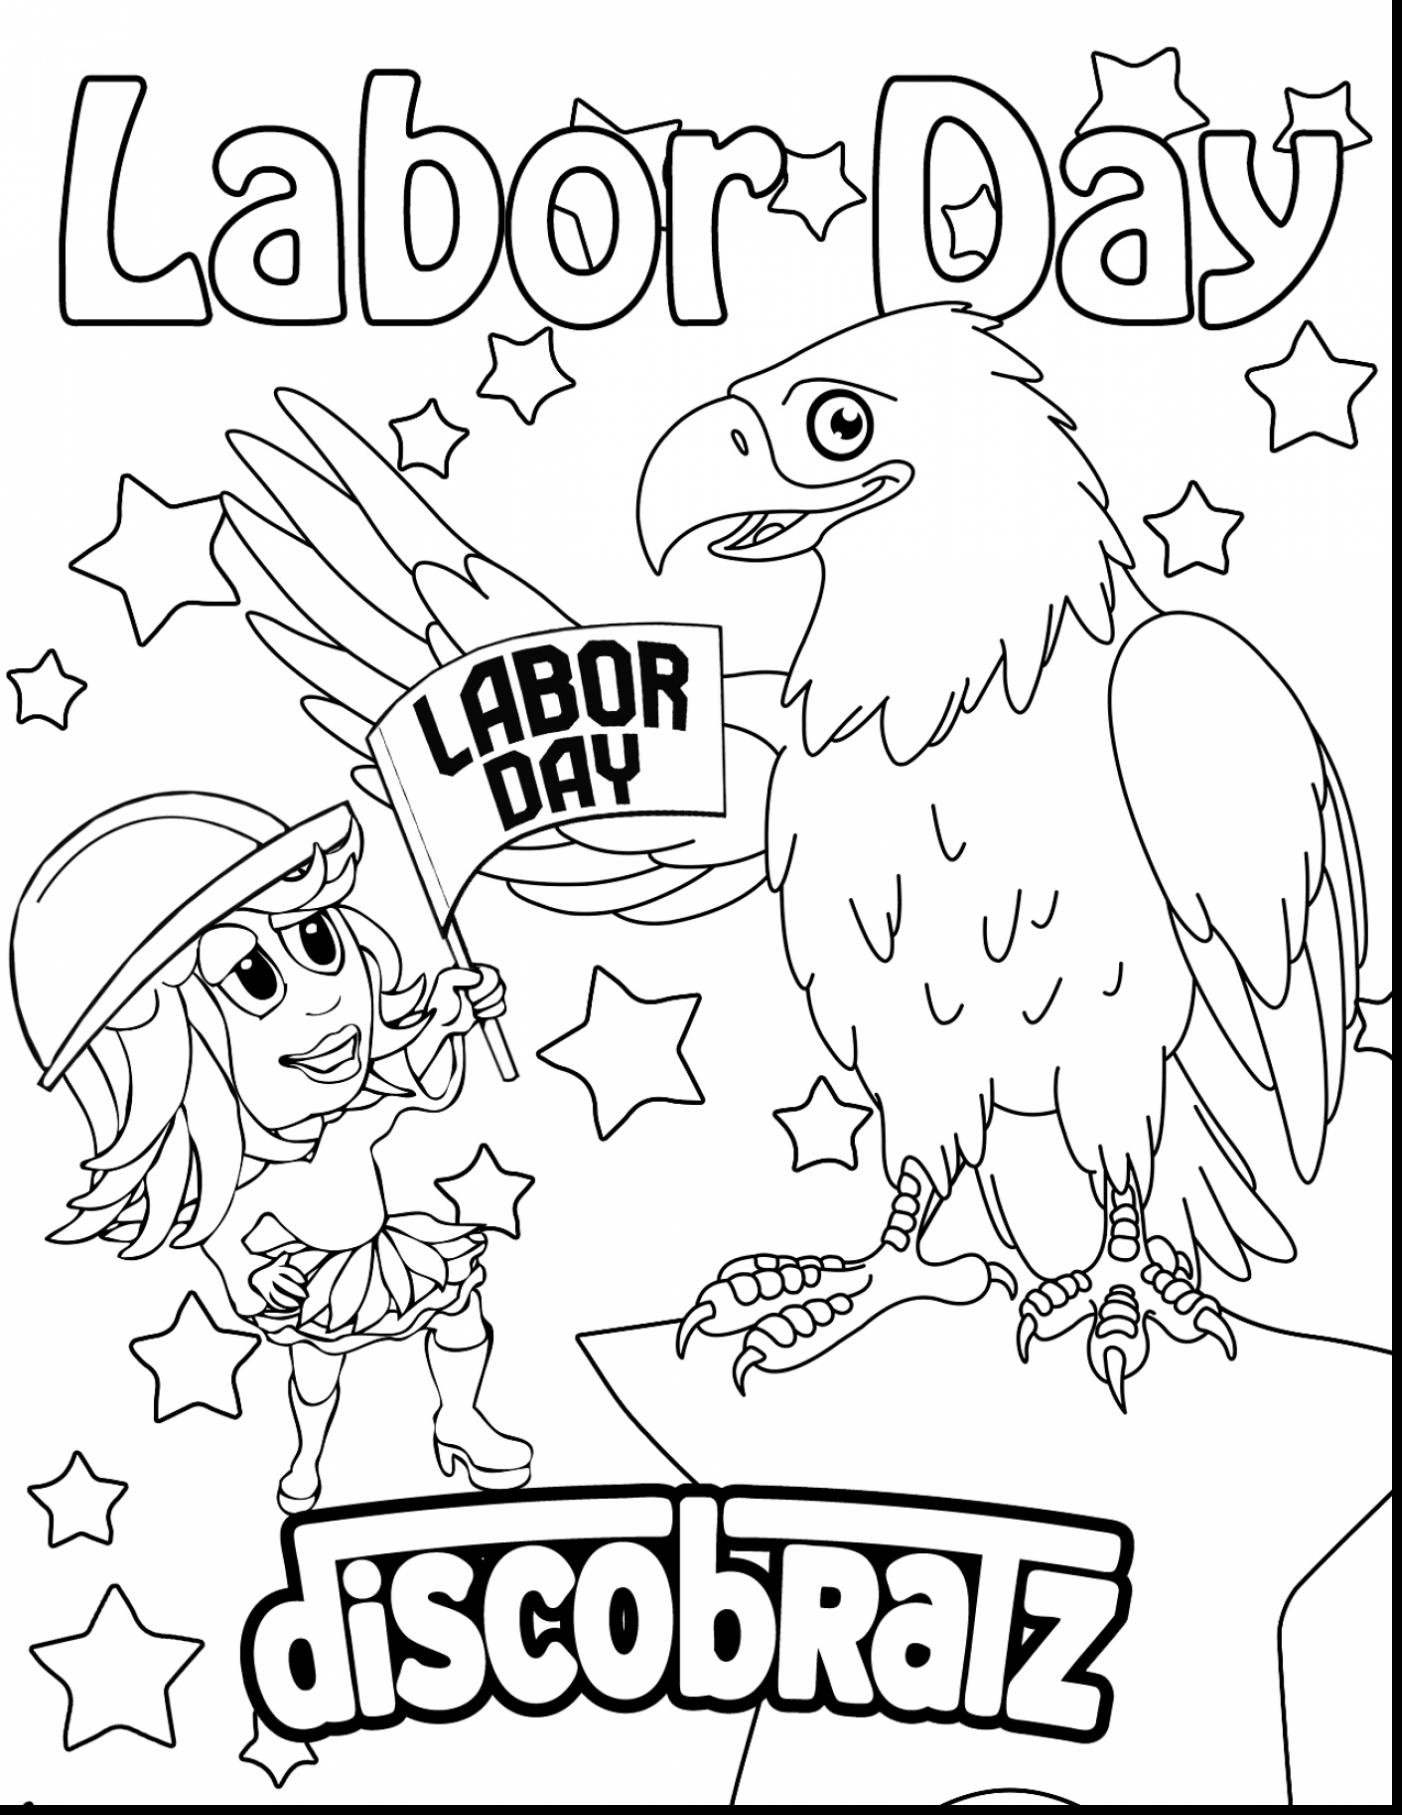 The Best Free Career Coloring Page Images Download From 50 Free